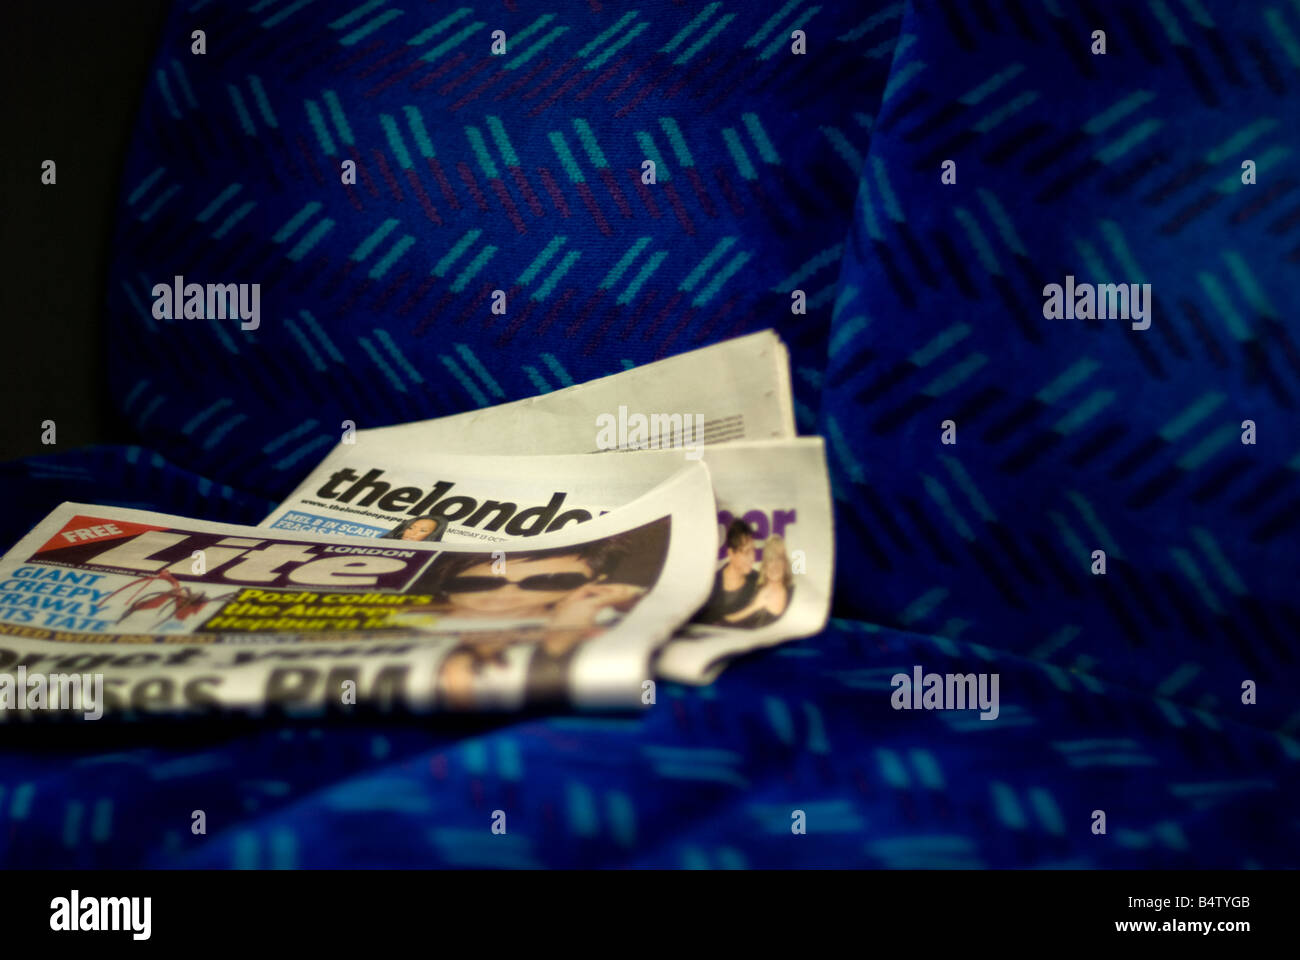 The London Paper and London Lite newspapers disgarded on train seat - Stock Image